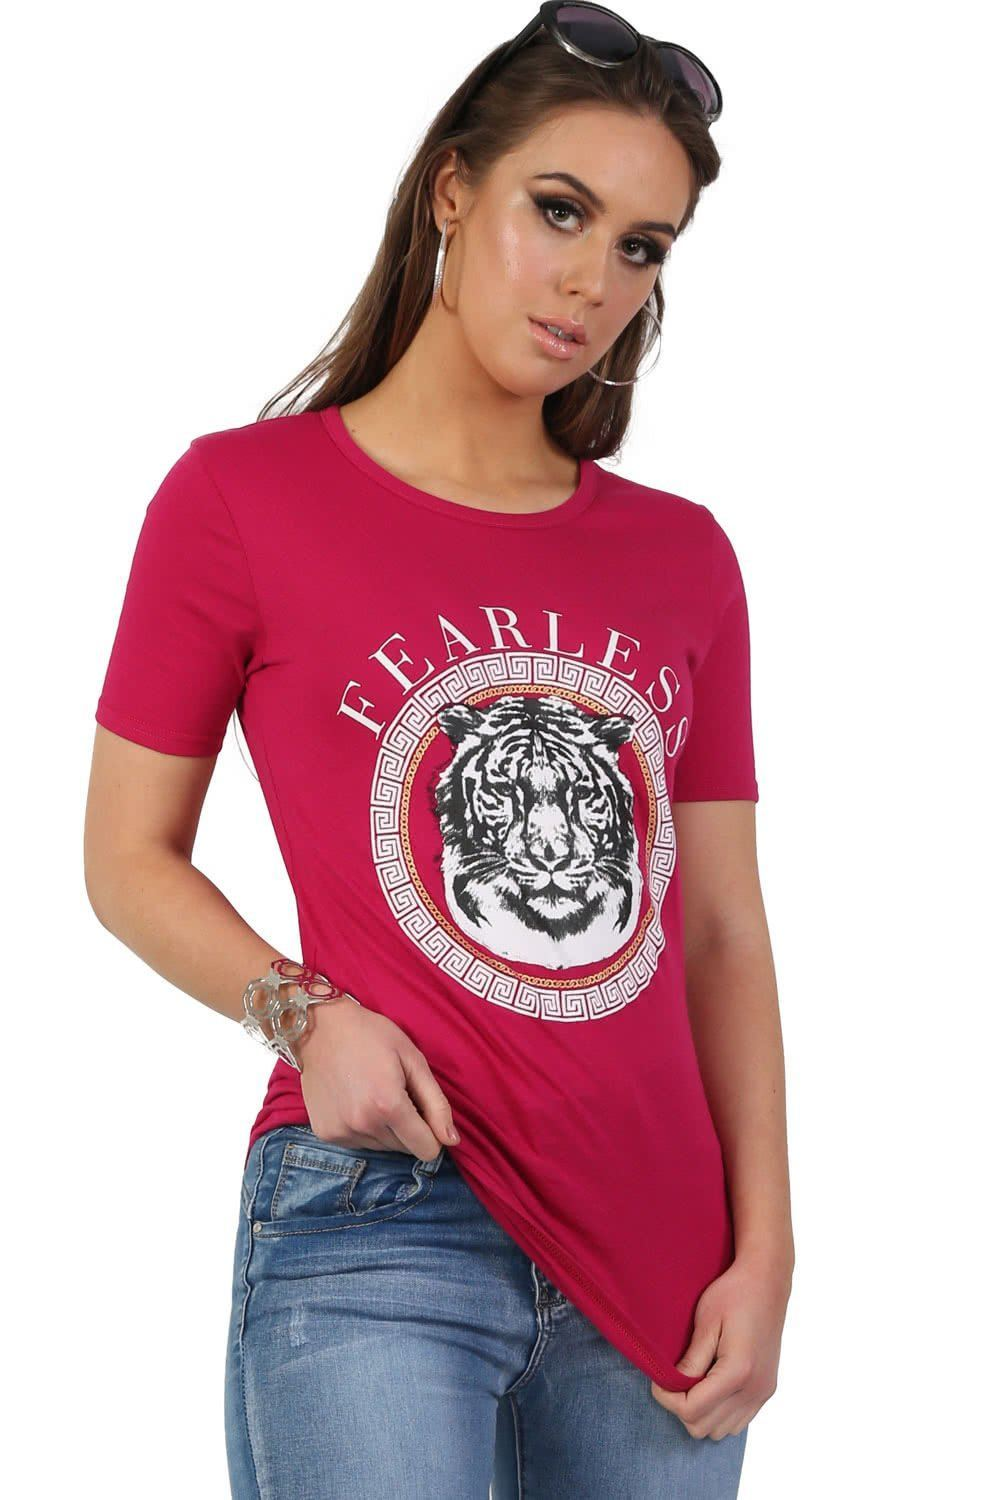 Fearless Slogan Print Tiger Motif Short Sleeve T-Shirt in Magenta Pink 0